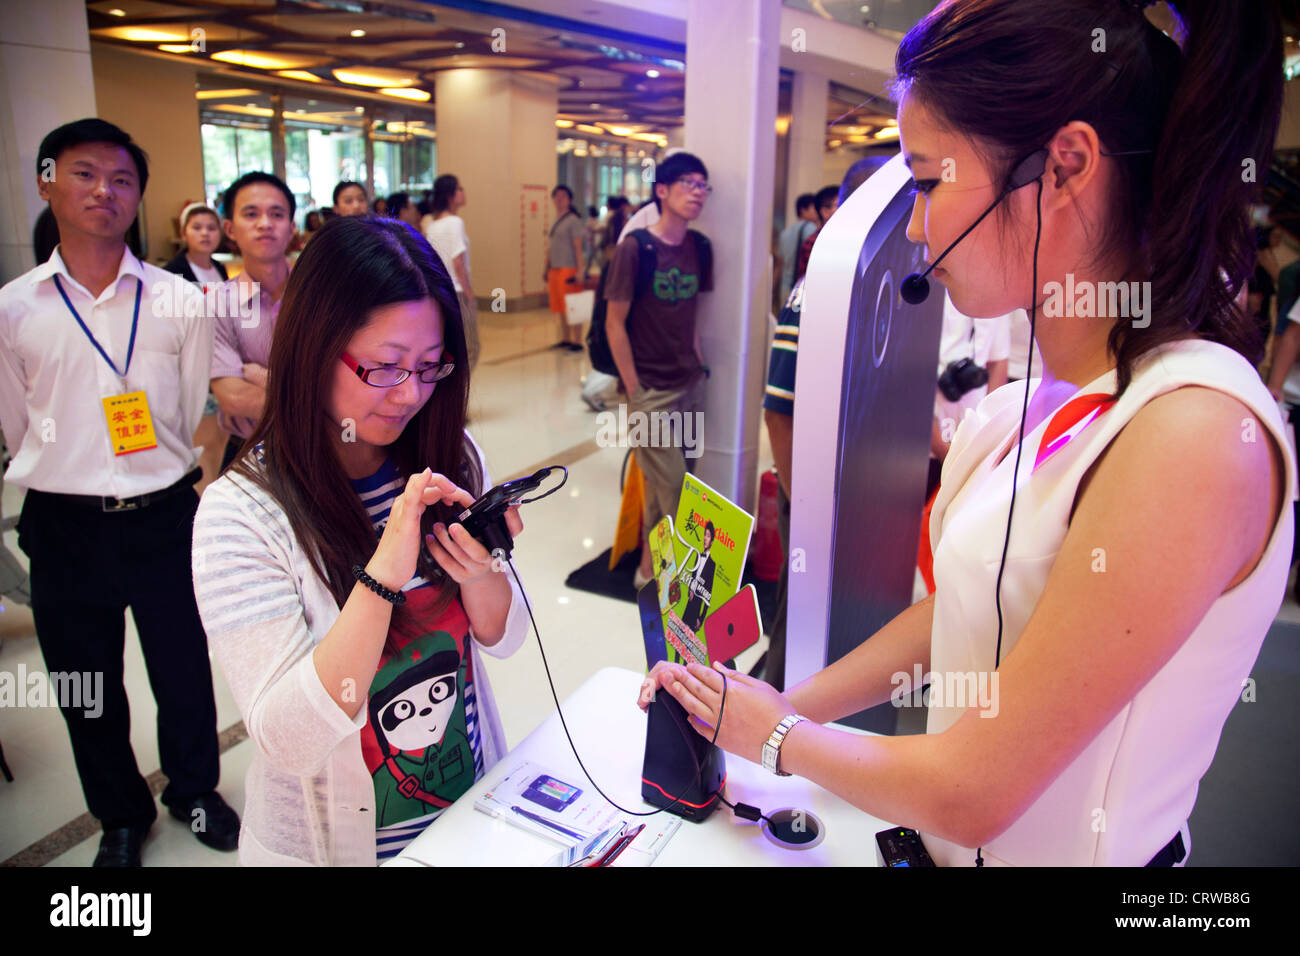 s assistant explains mobile deals to a customer pr by cell s assistant explains mobile deals to a customer pr by cell phone company mororola at joy city shopping mall beijing